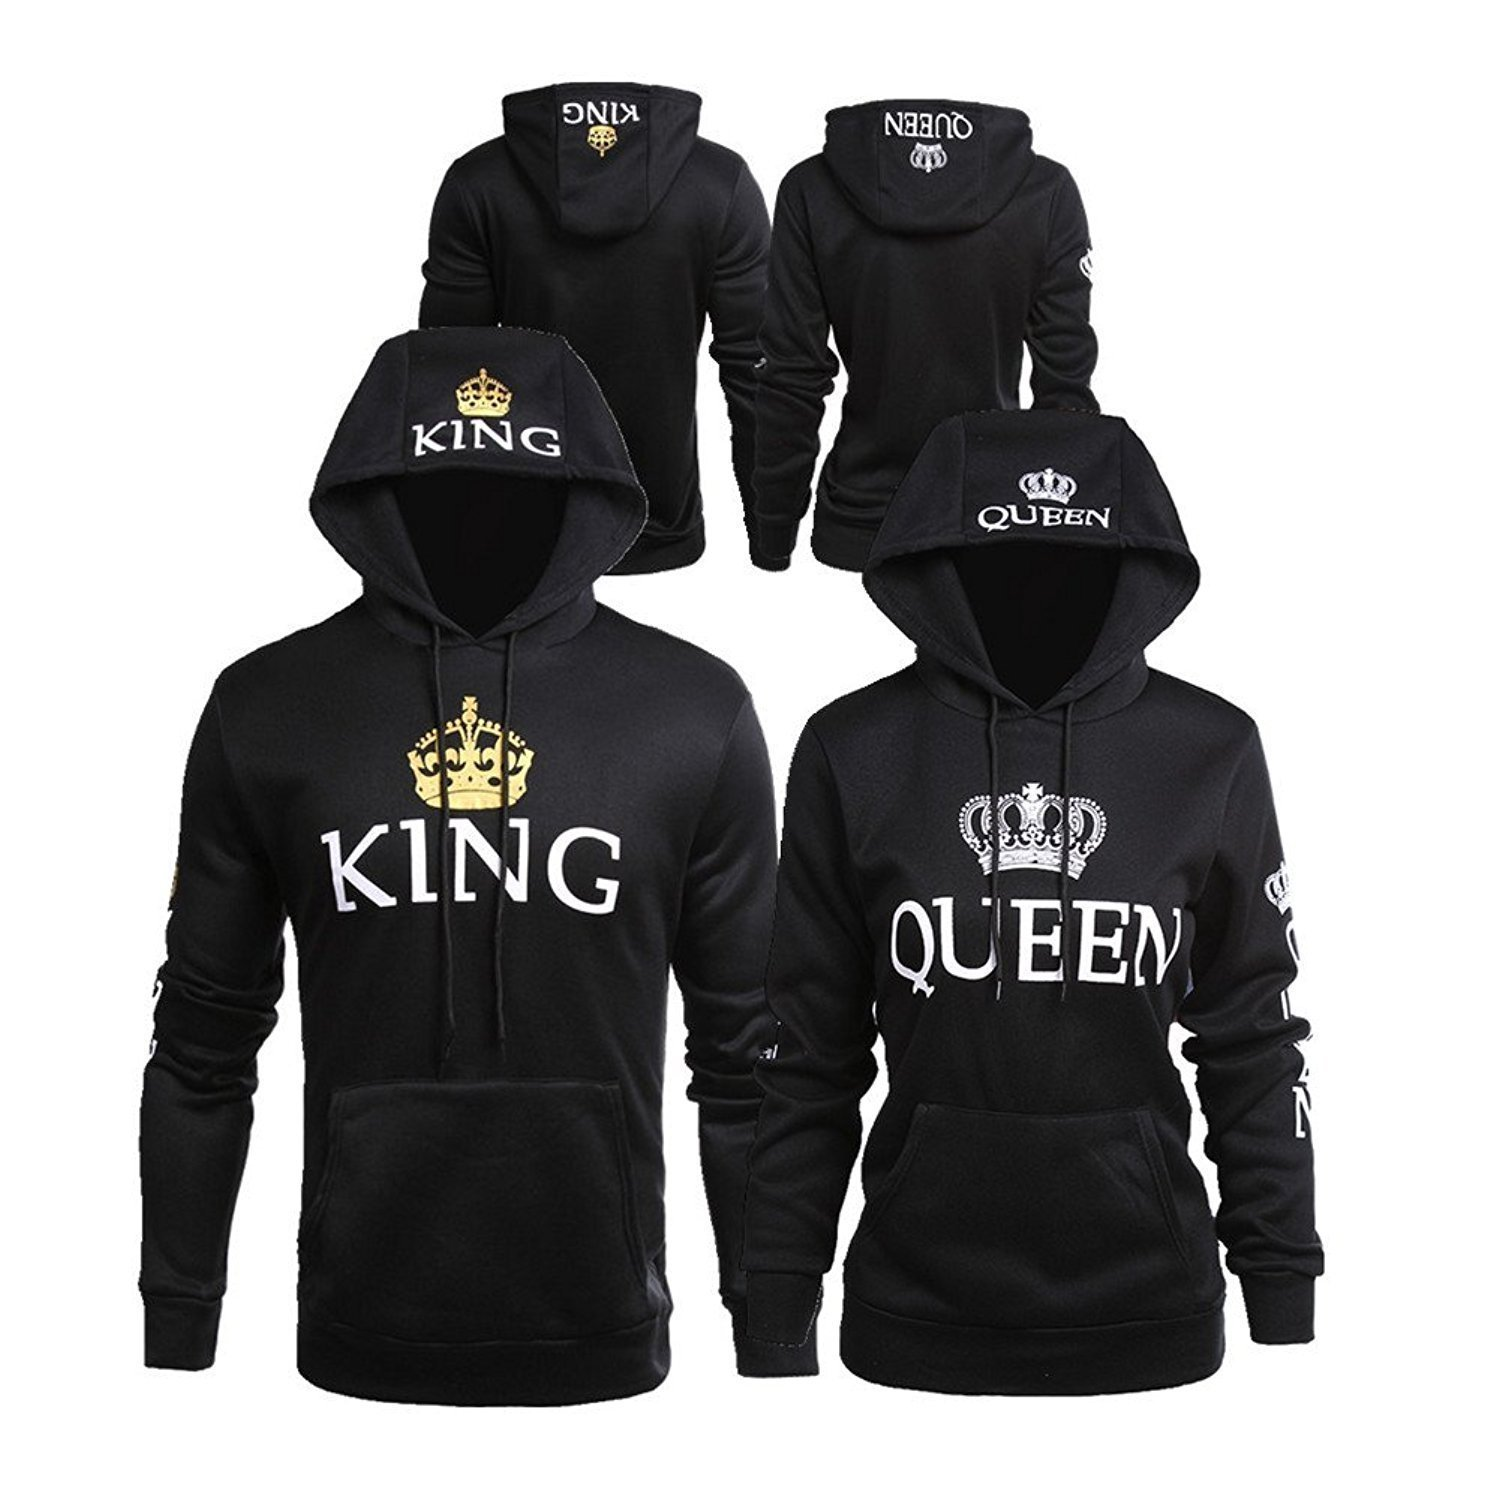 f0f64858 You get TWO hoodies in this deal - one for HIM and one for HER!!! Sizes:  Her Sizes S-XL/ His Sizes M-2XL-(more details in the